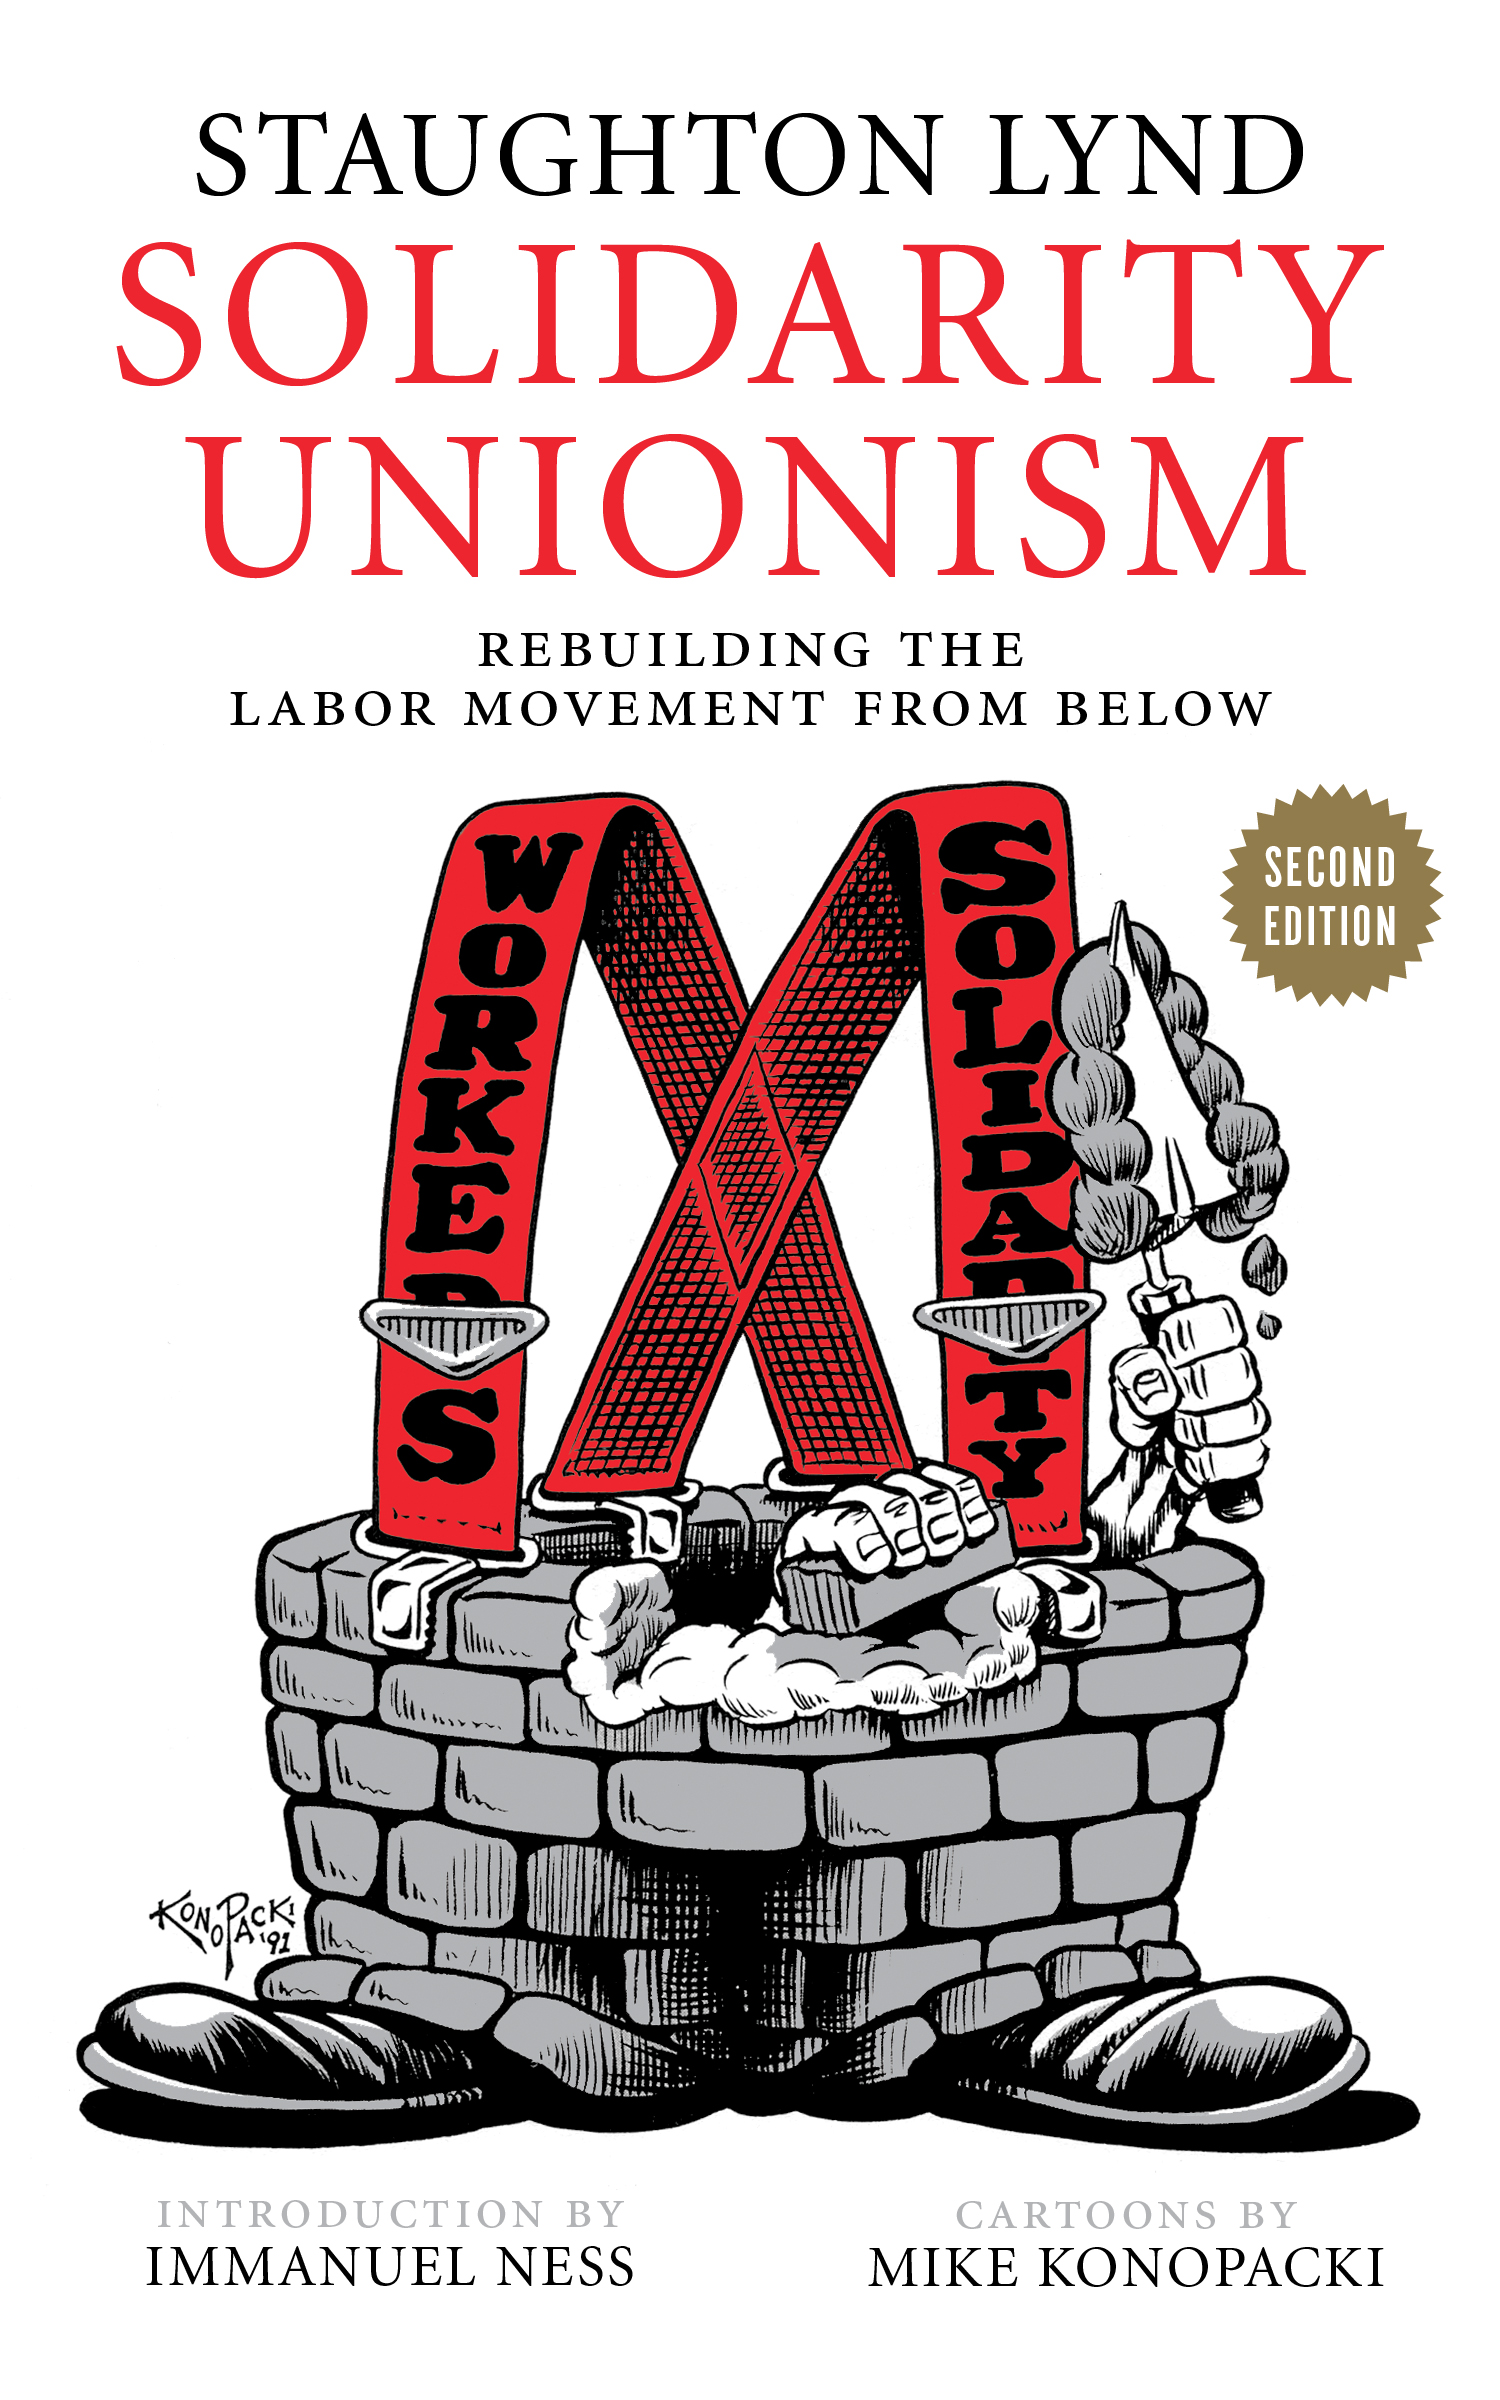 Solidarity Unionism: Rebuilding the Labor Movement from Below.